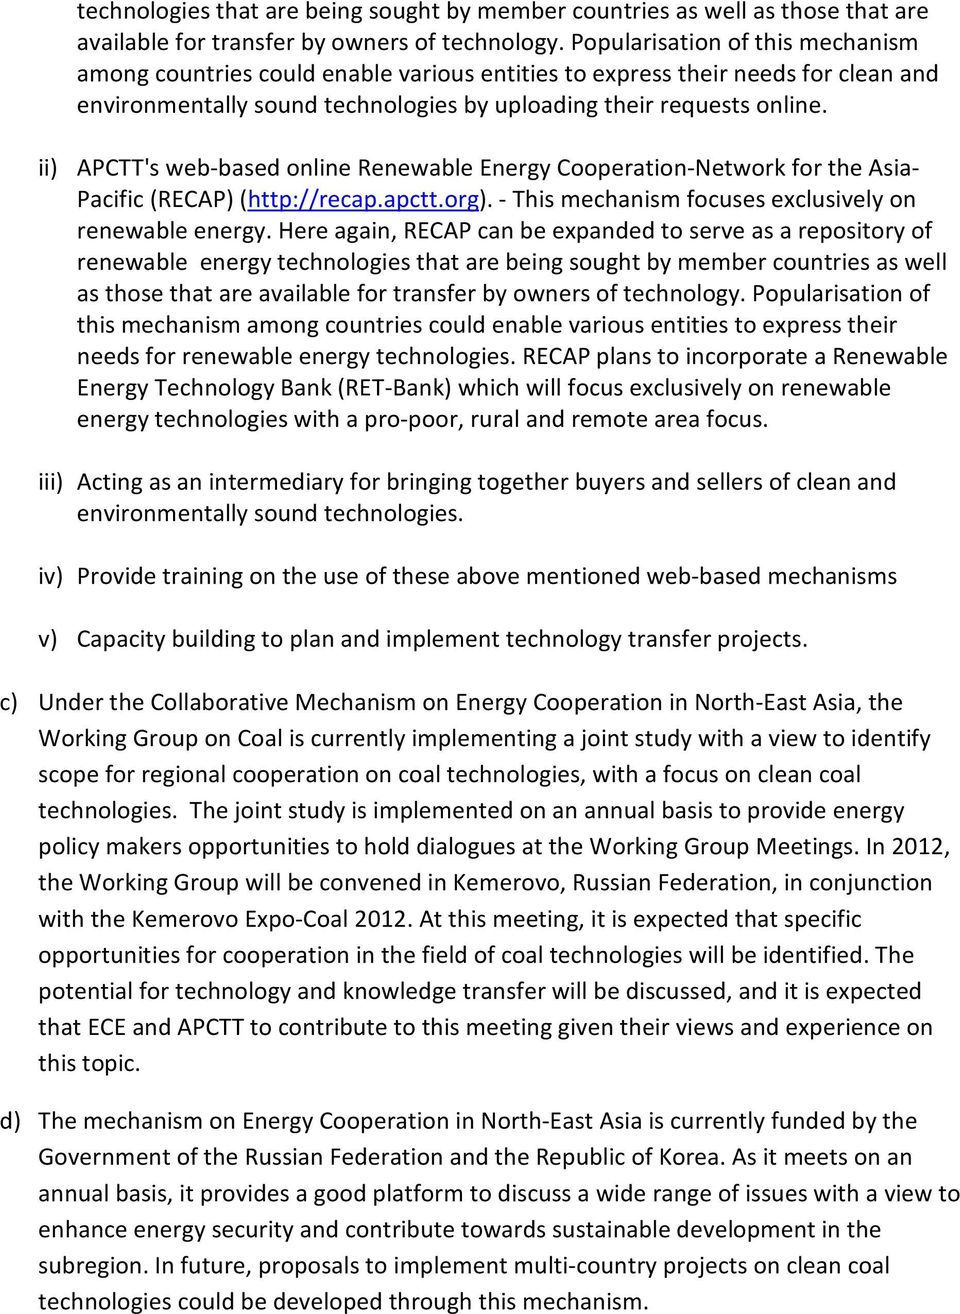 ii) APCTT's web-based online Renewable Energy Cooperation-Network for the Asia- Pacific (RECAP) (http://recap.apctt.org). - This mechanism focuses exclusively on renewable energy.